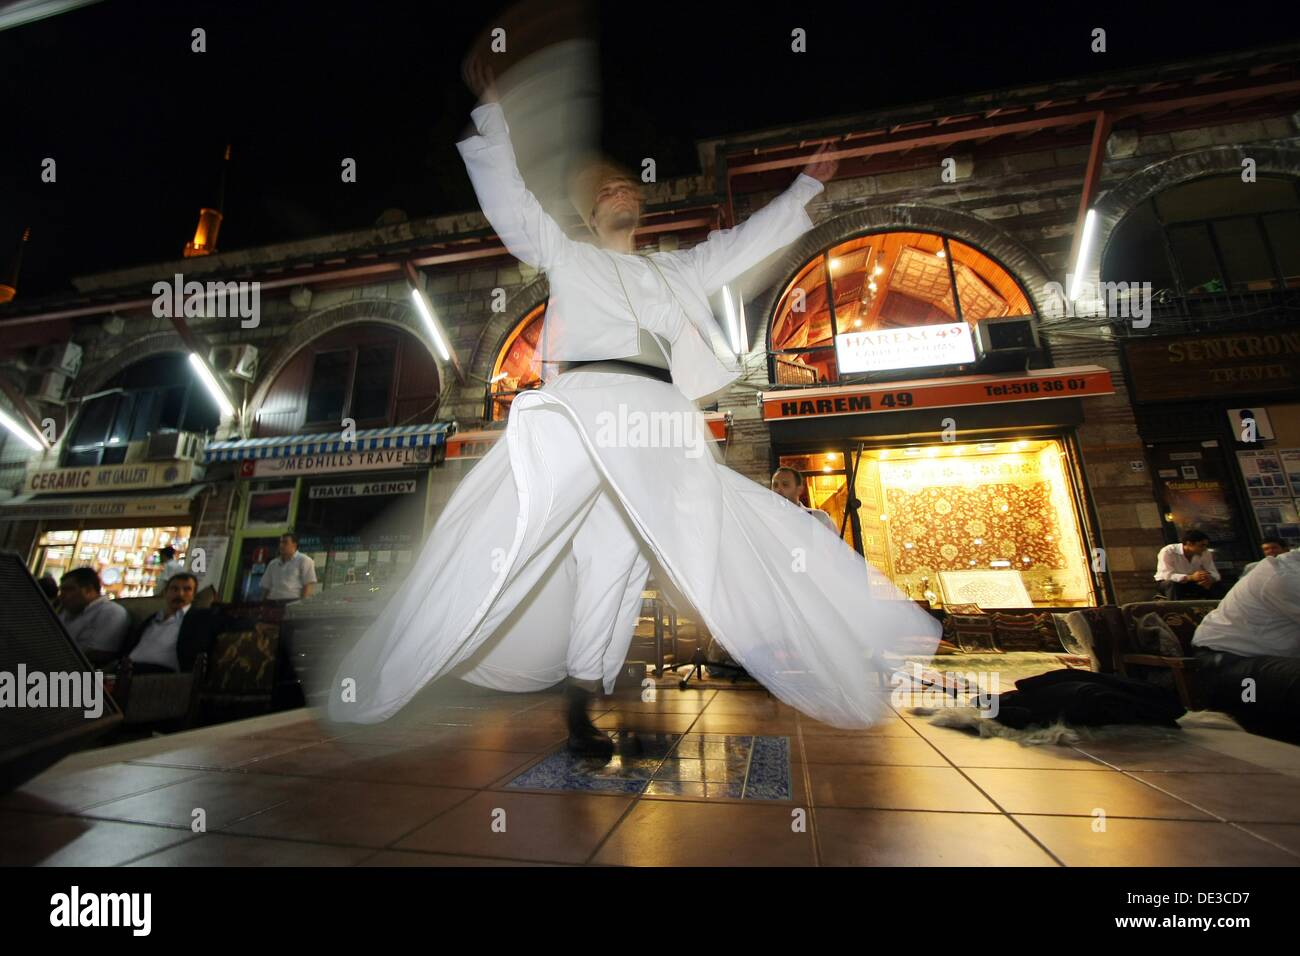 Whirling Dervishes, performing in the street, Istanbul, Turkey - Stock Image